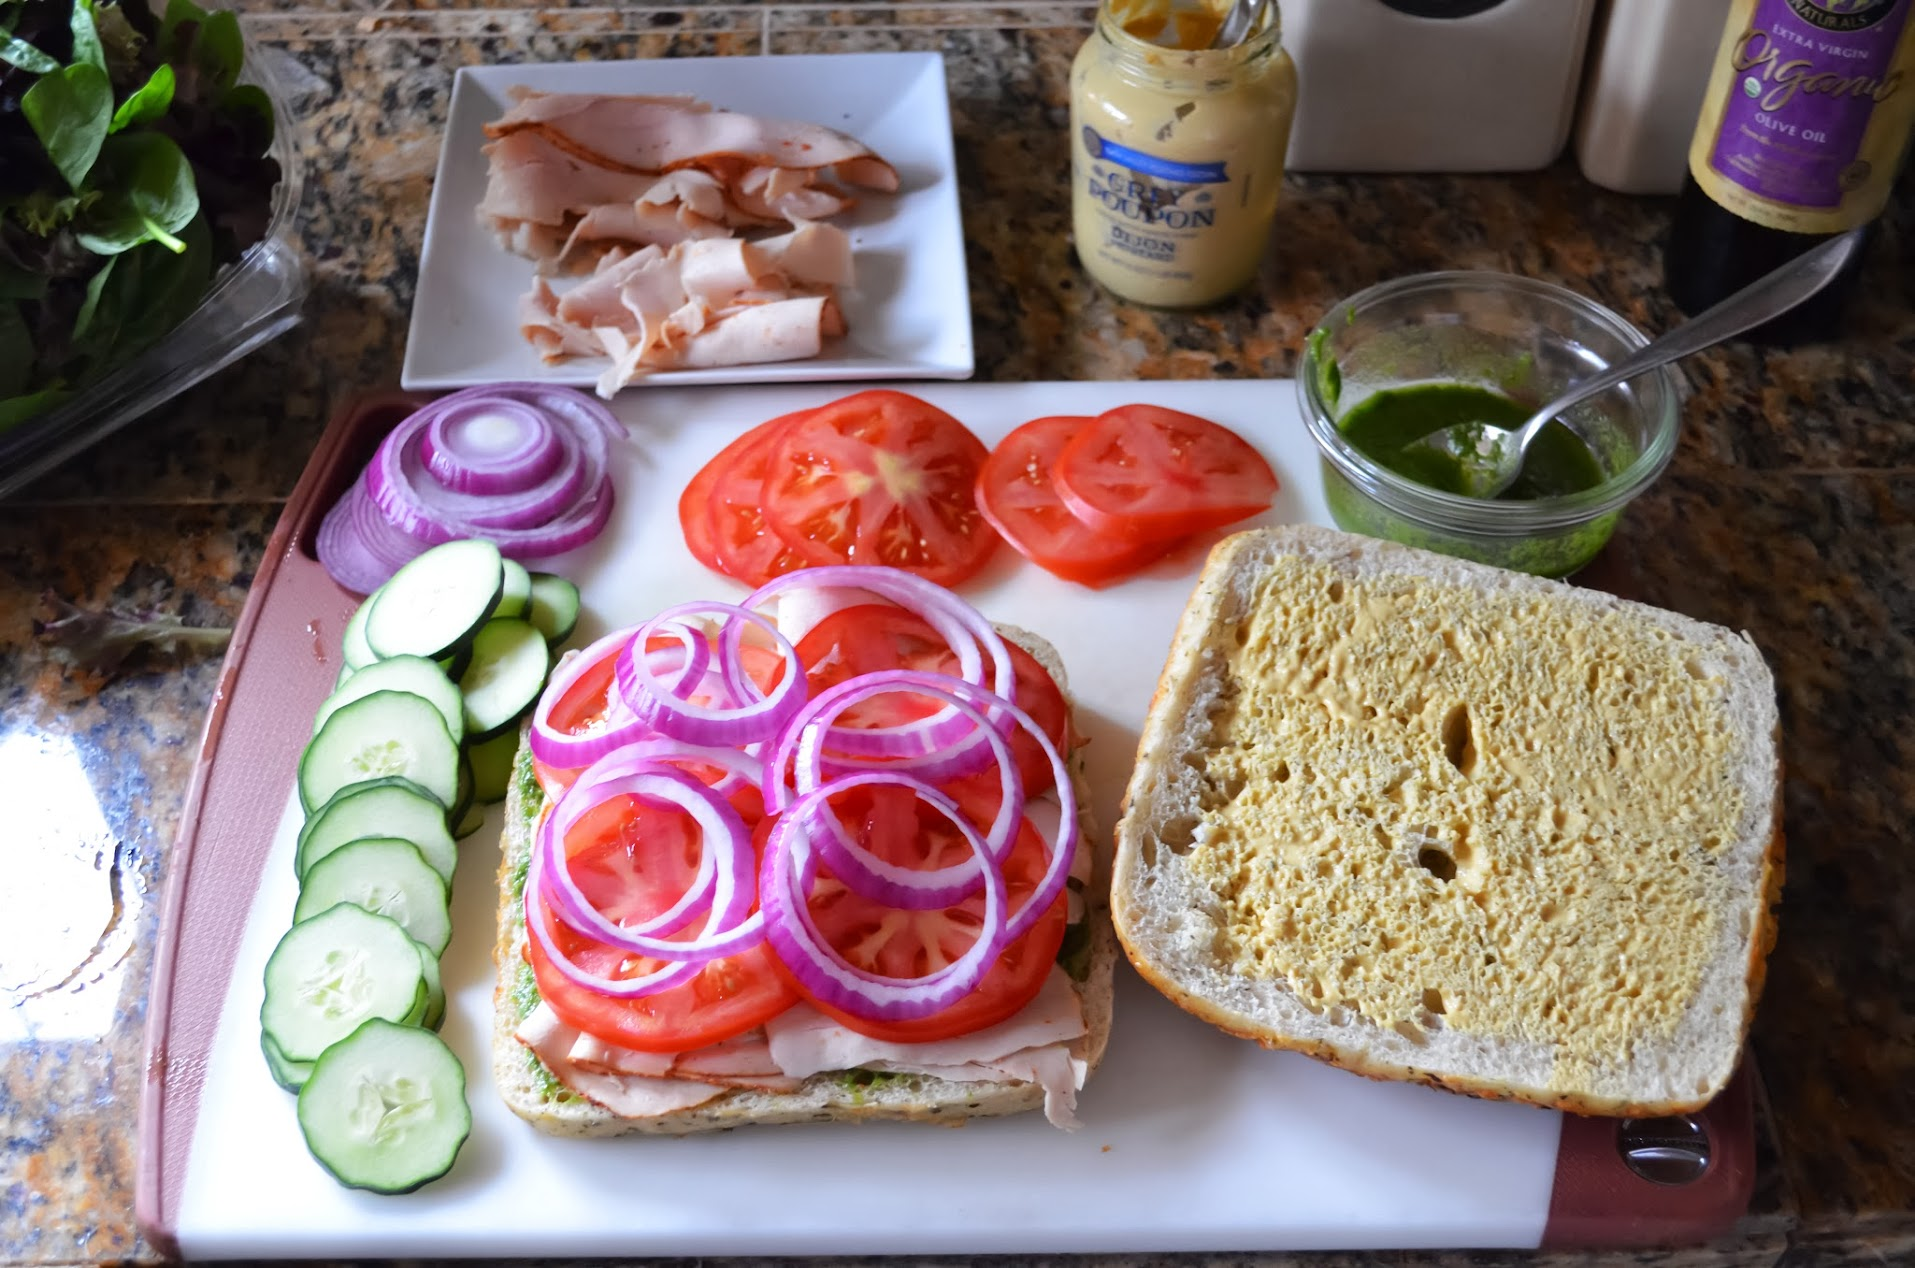 Turkey-Pesto-Paninis-Tomatoes-Onion.jpg